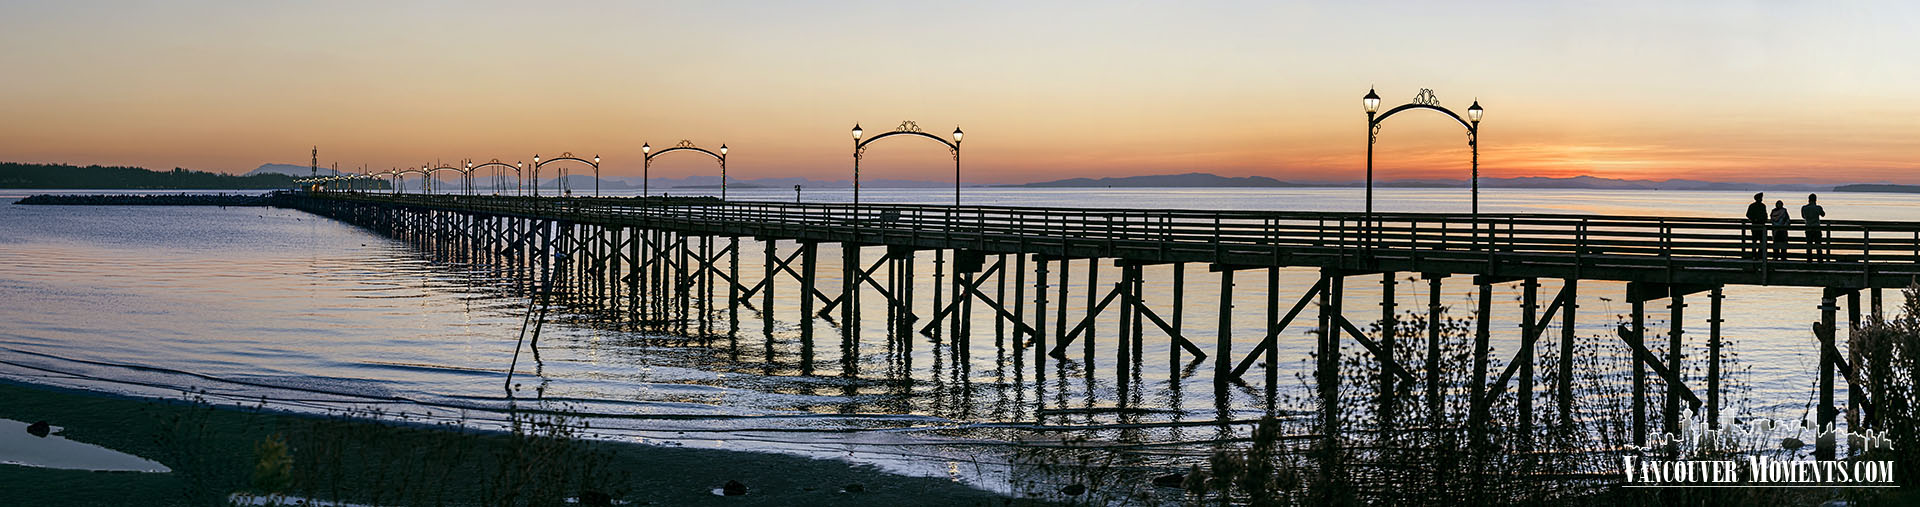 White_Rock_Pier_Sunset_WS227A1